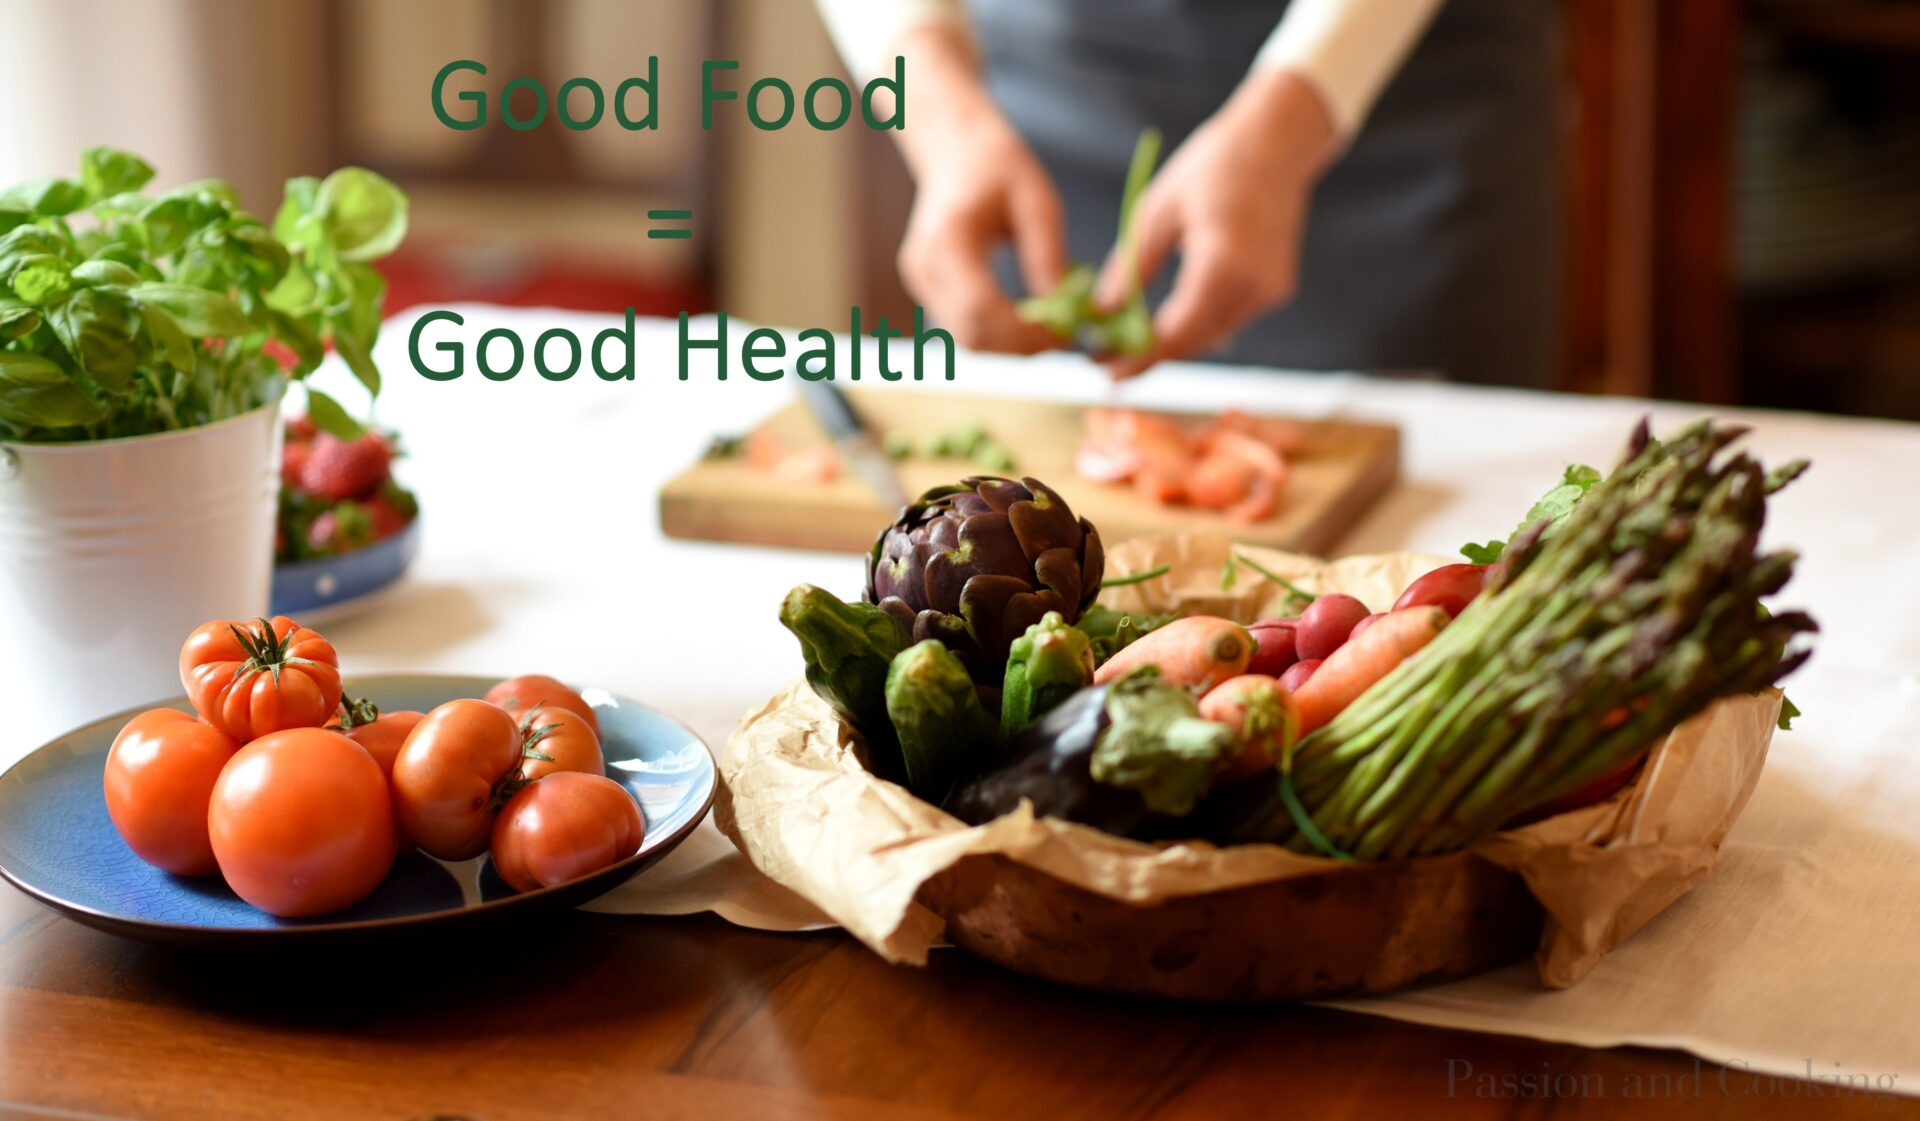 Food and good health - Good Food Good Health